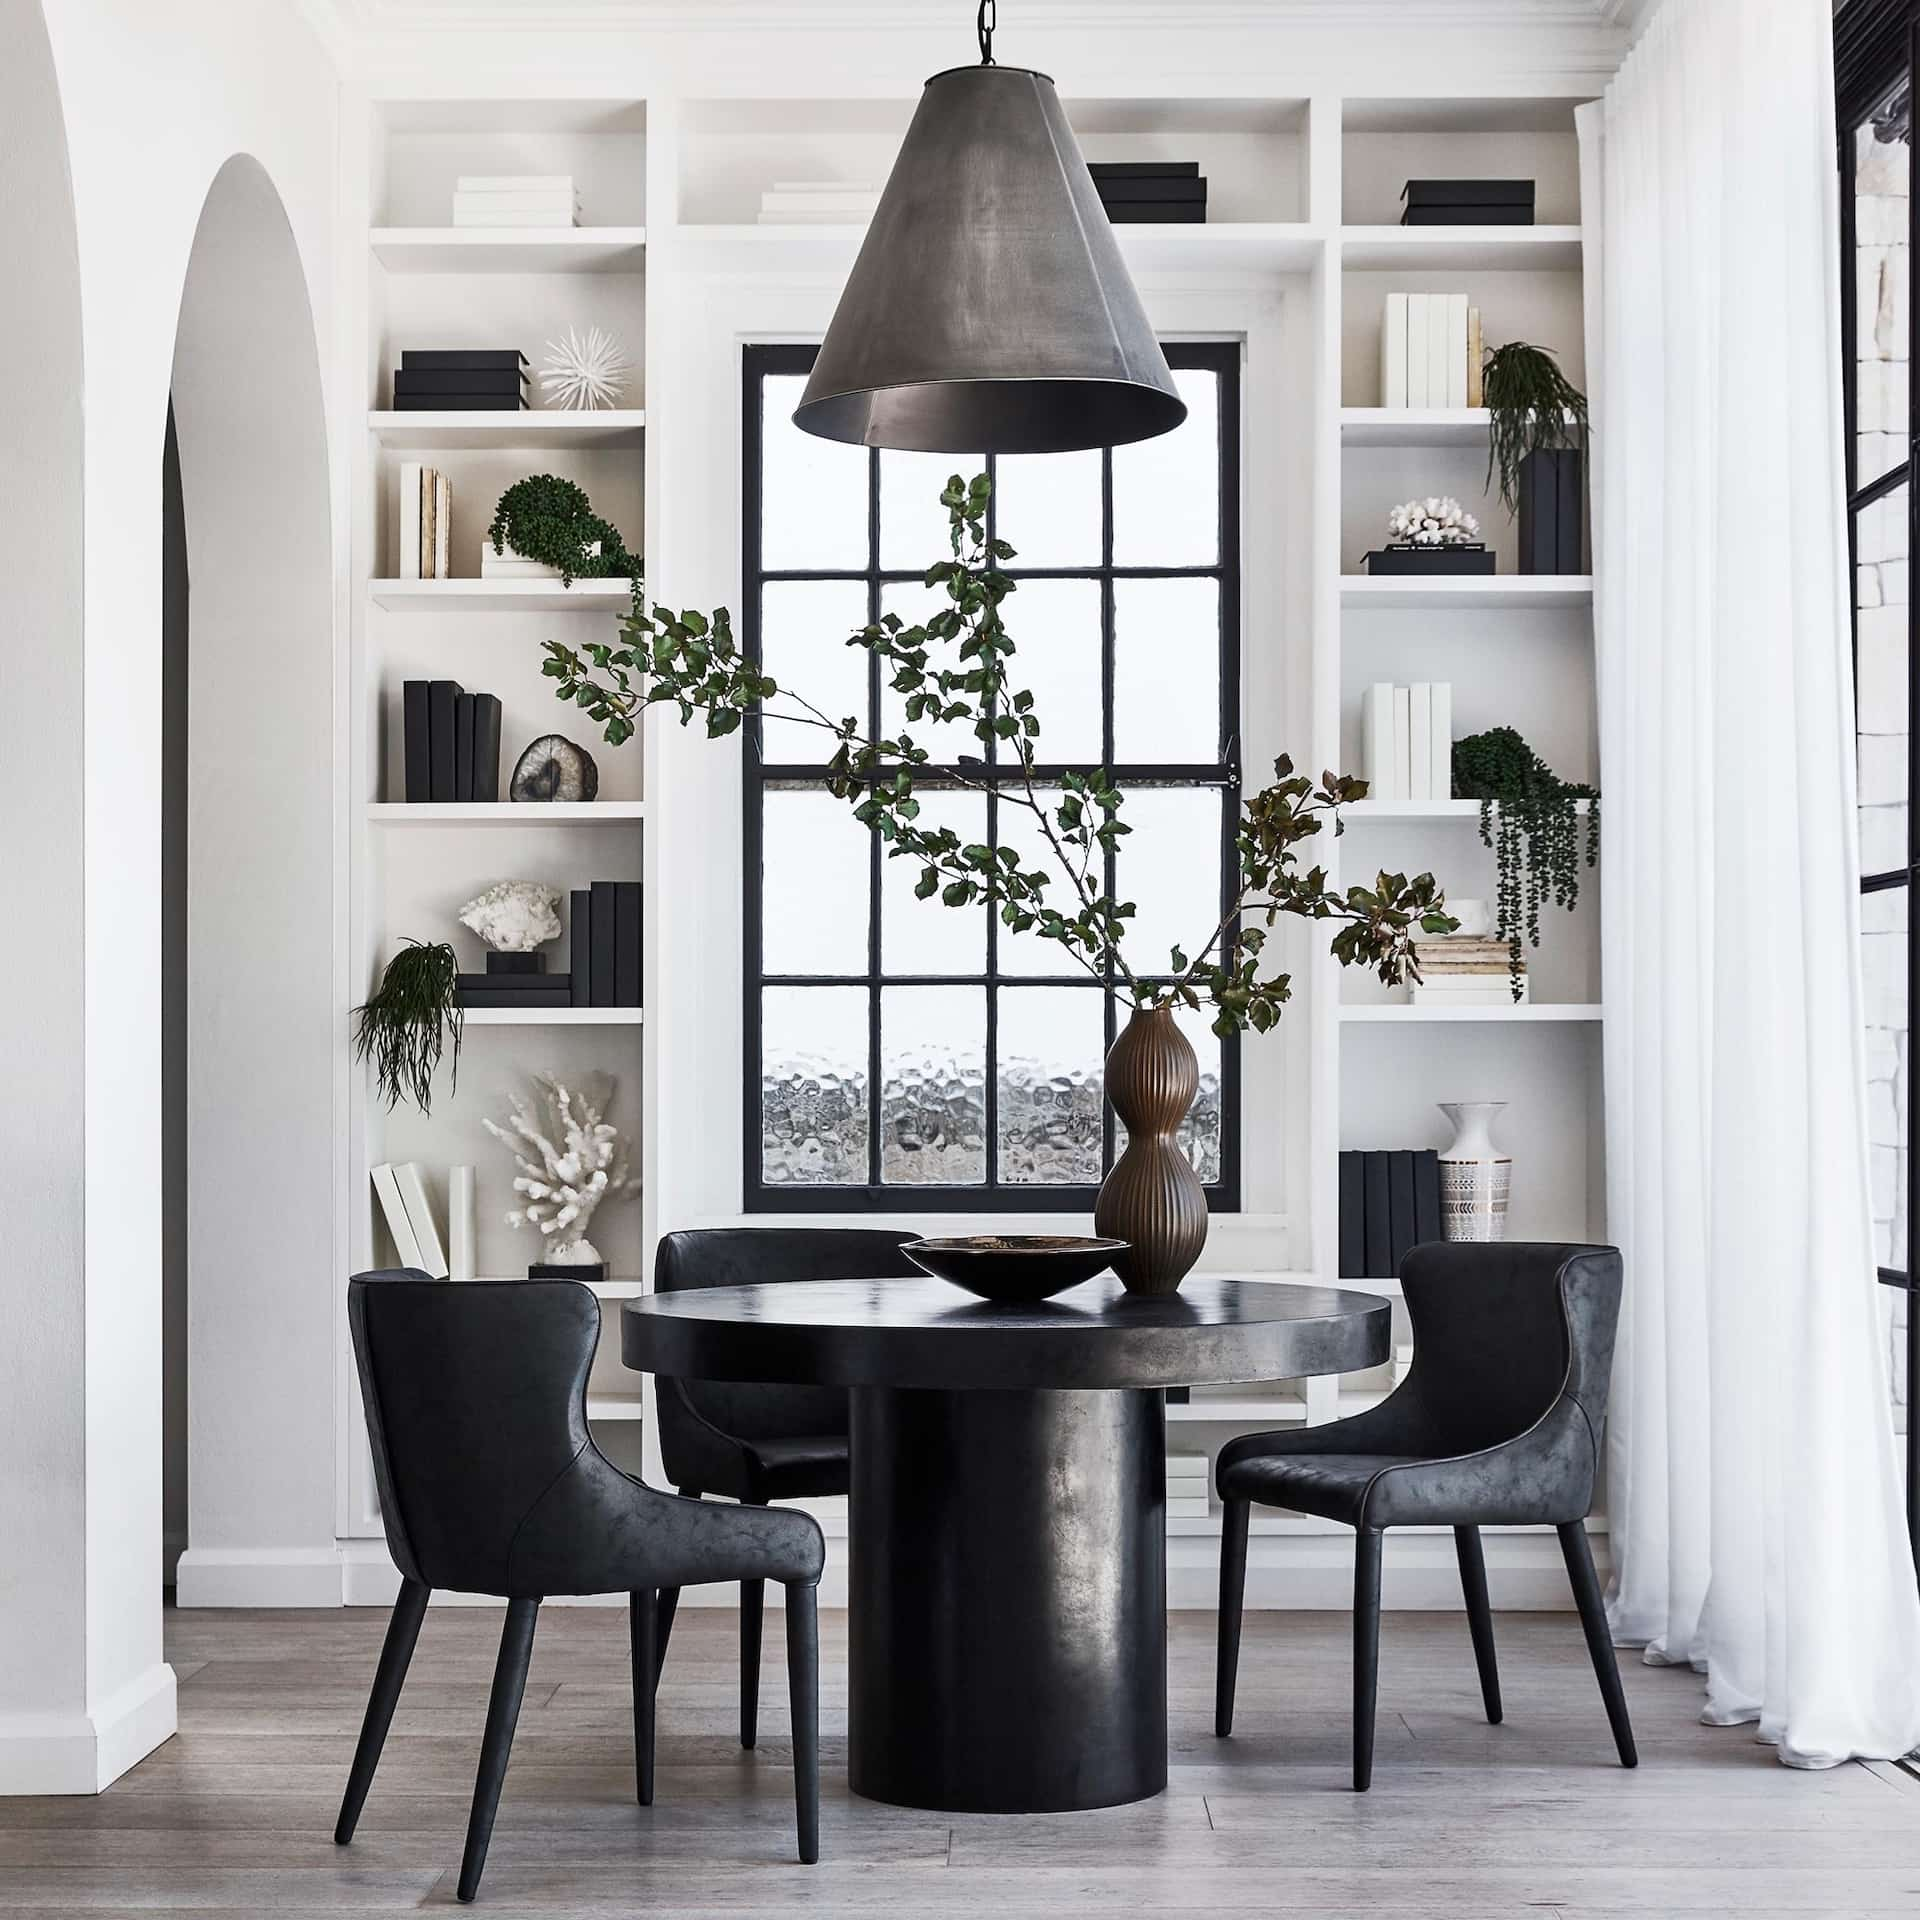 coco republic small round black dining table with pendant above it